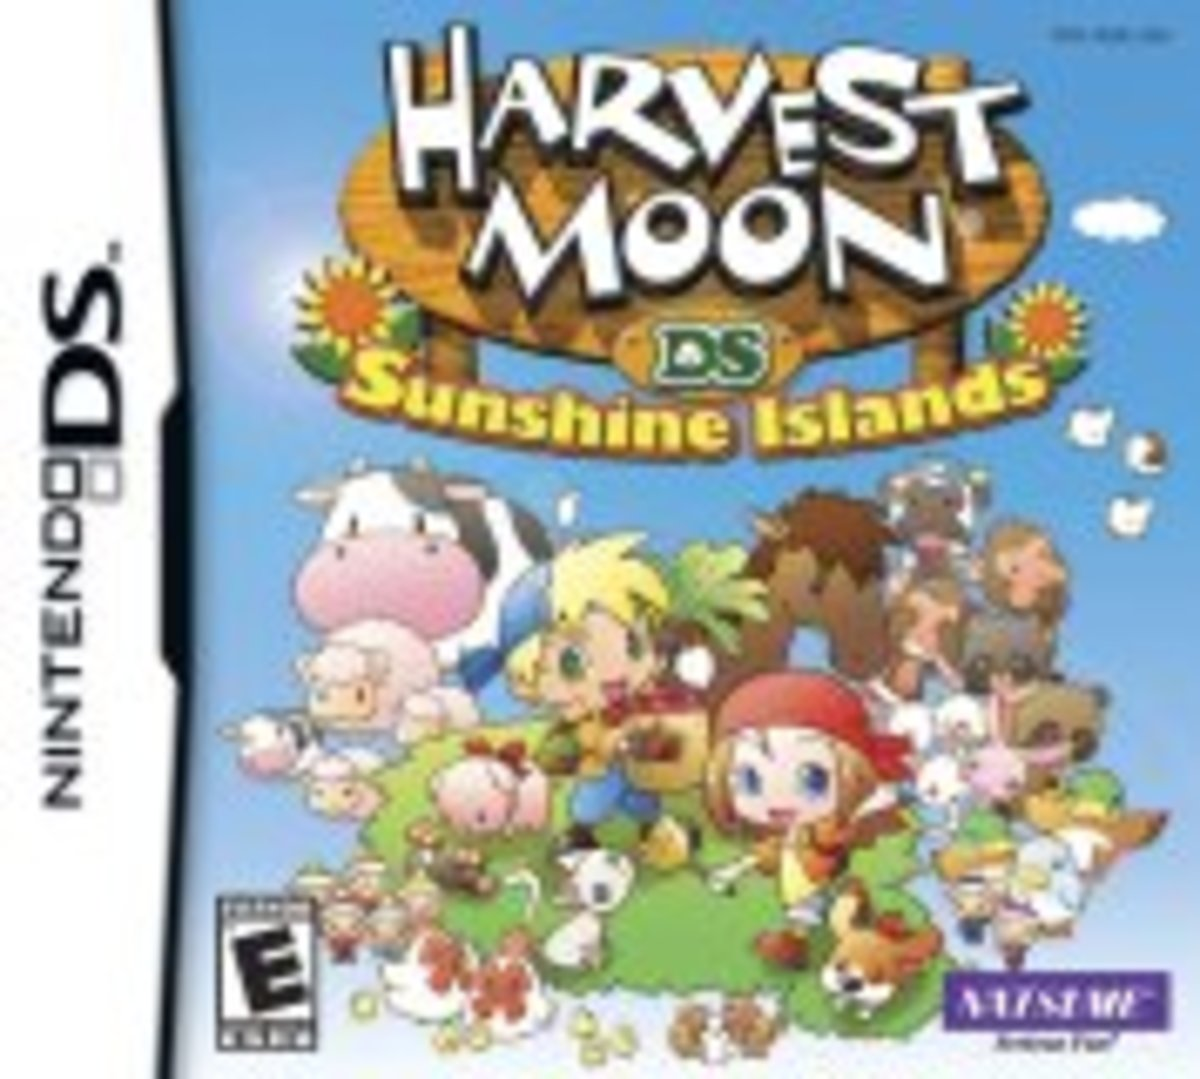 bachelors-and-bachelorettes-in-harvest-moon-ds-sunshine-islands